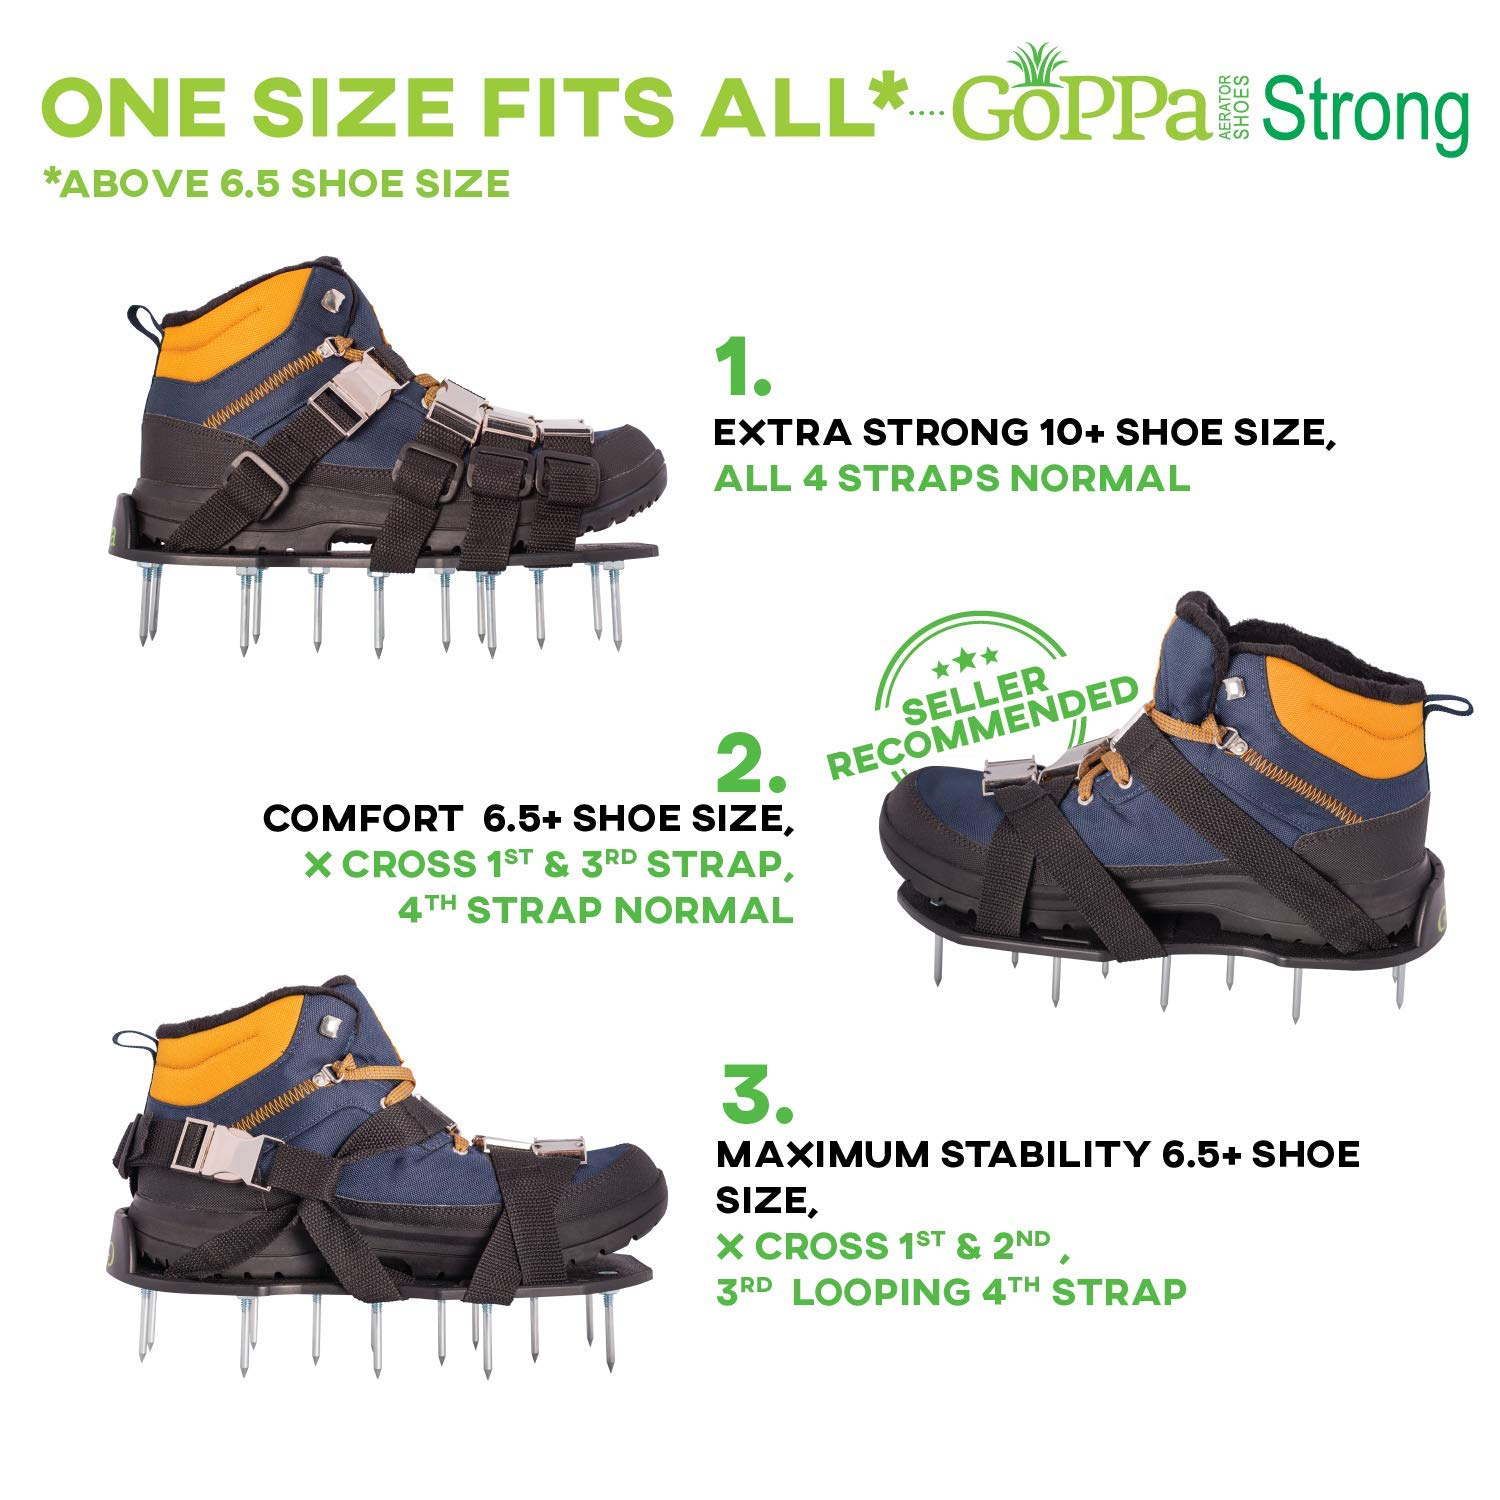 GoPPa Lawn Aerator Shoes – Heavy Duty Lawn Aerator Sandal, You only FIT Once. Ready for aerating Your Yard, Lawn, Roots & Grass – Strong Design by GoPPa (Image #4)